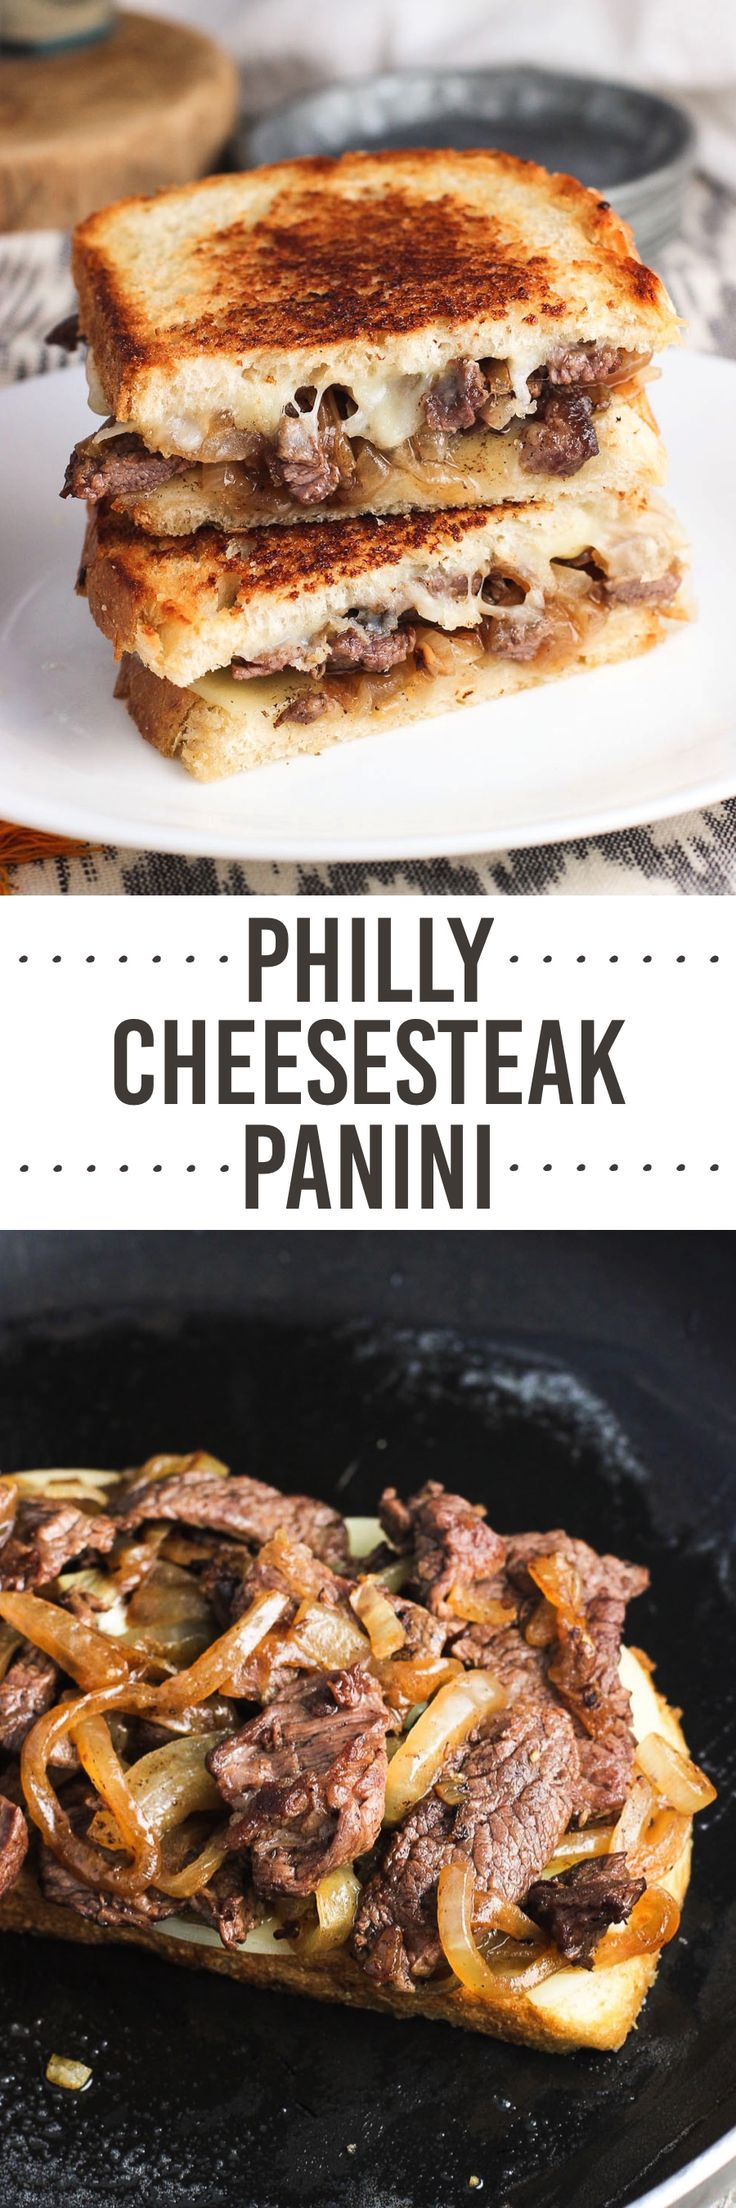 This Philly cheesesteak panini is inspired by the sandwich classic and features thinly-sliced chuck roast, provolone cheese, and lots of caramelized onions for a delicious and easy lunch or dinner!(Philly Cheese Sandwich)